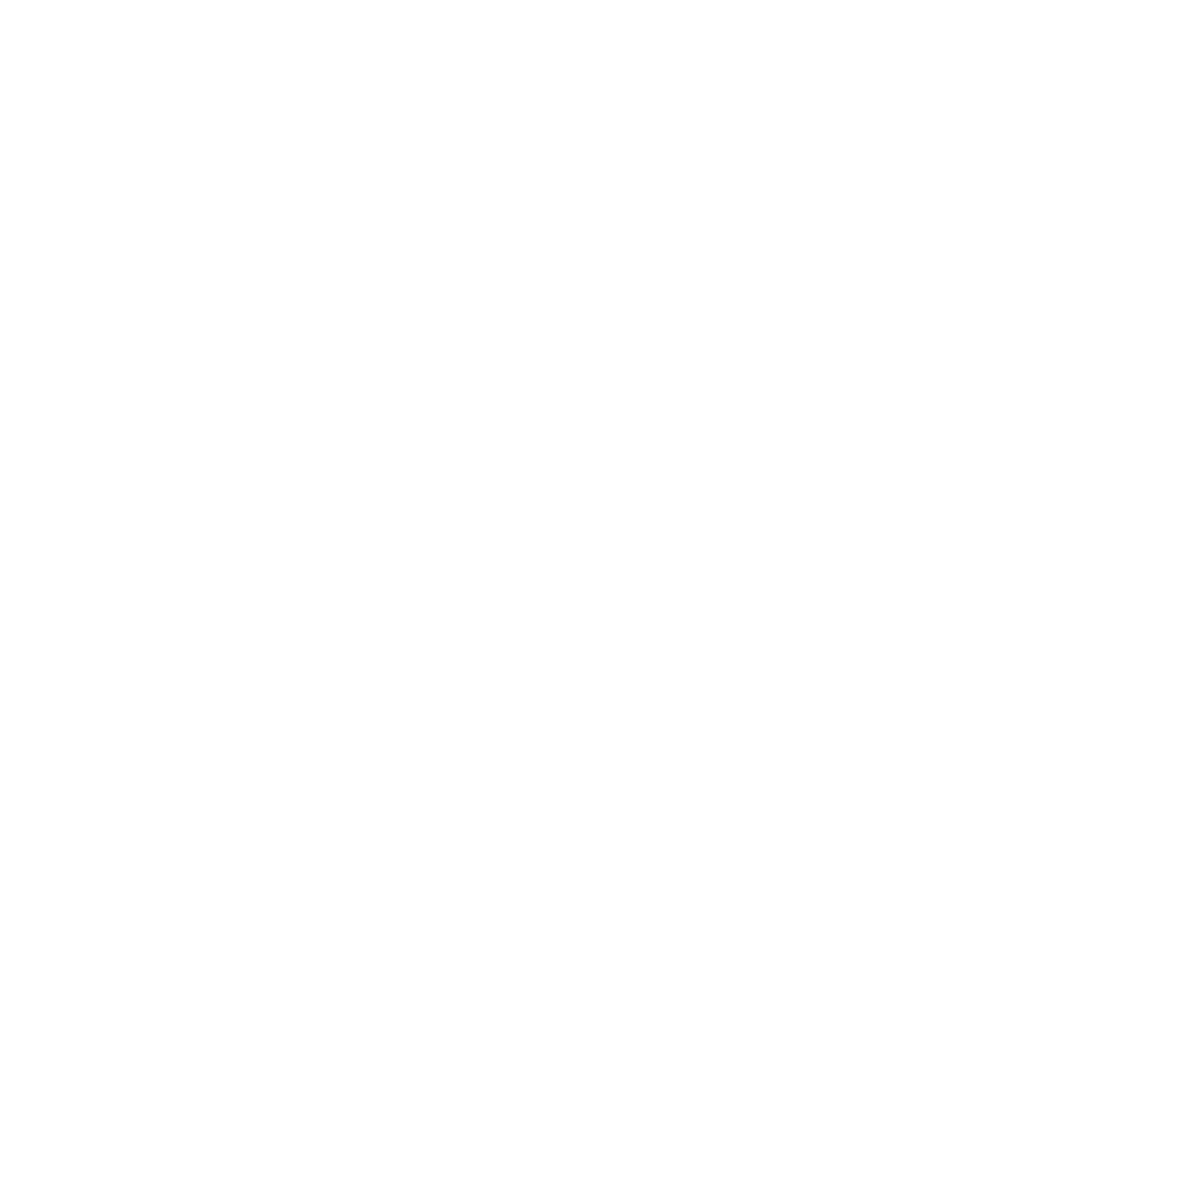 Wreckcreation